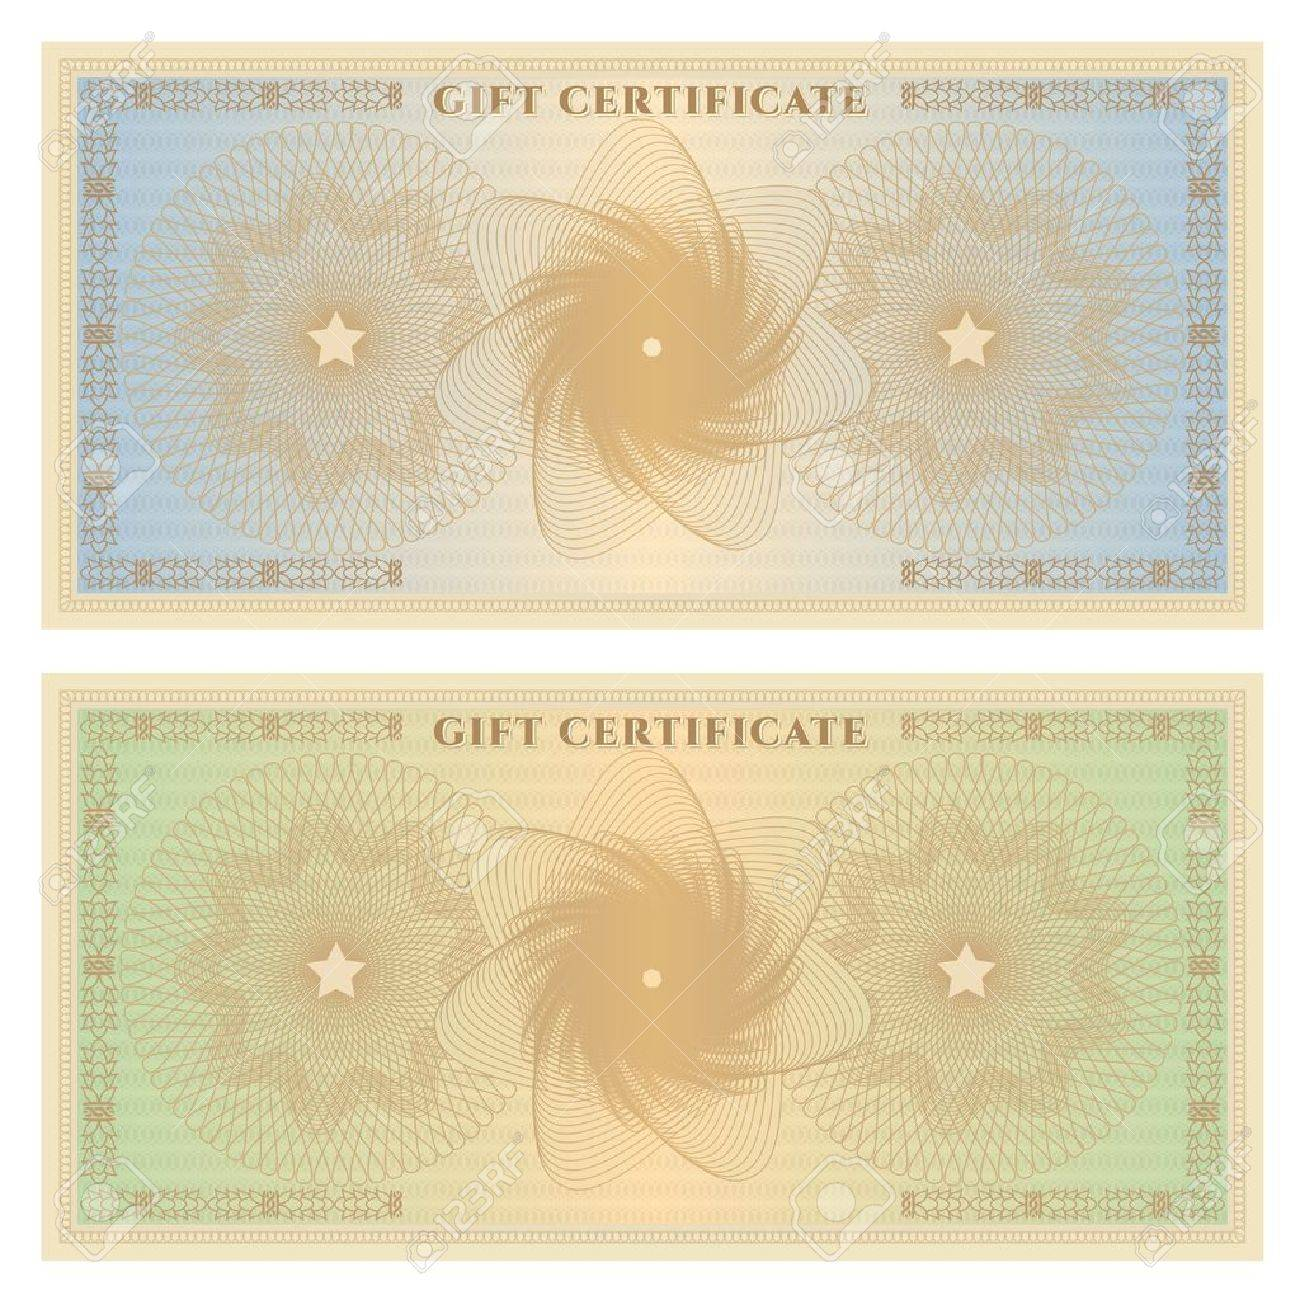 Gift Certificate Voucher Template With Guilloche Pattern – Money Note Template